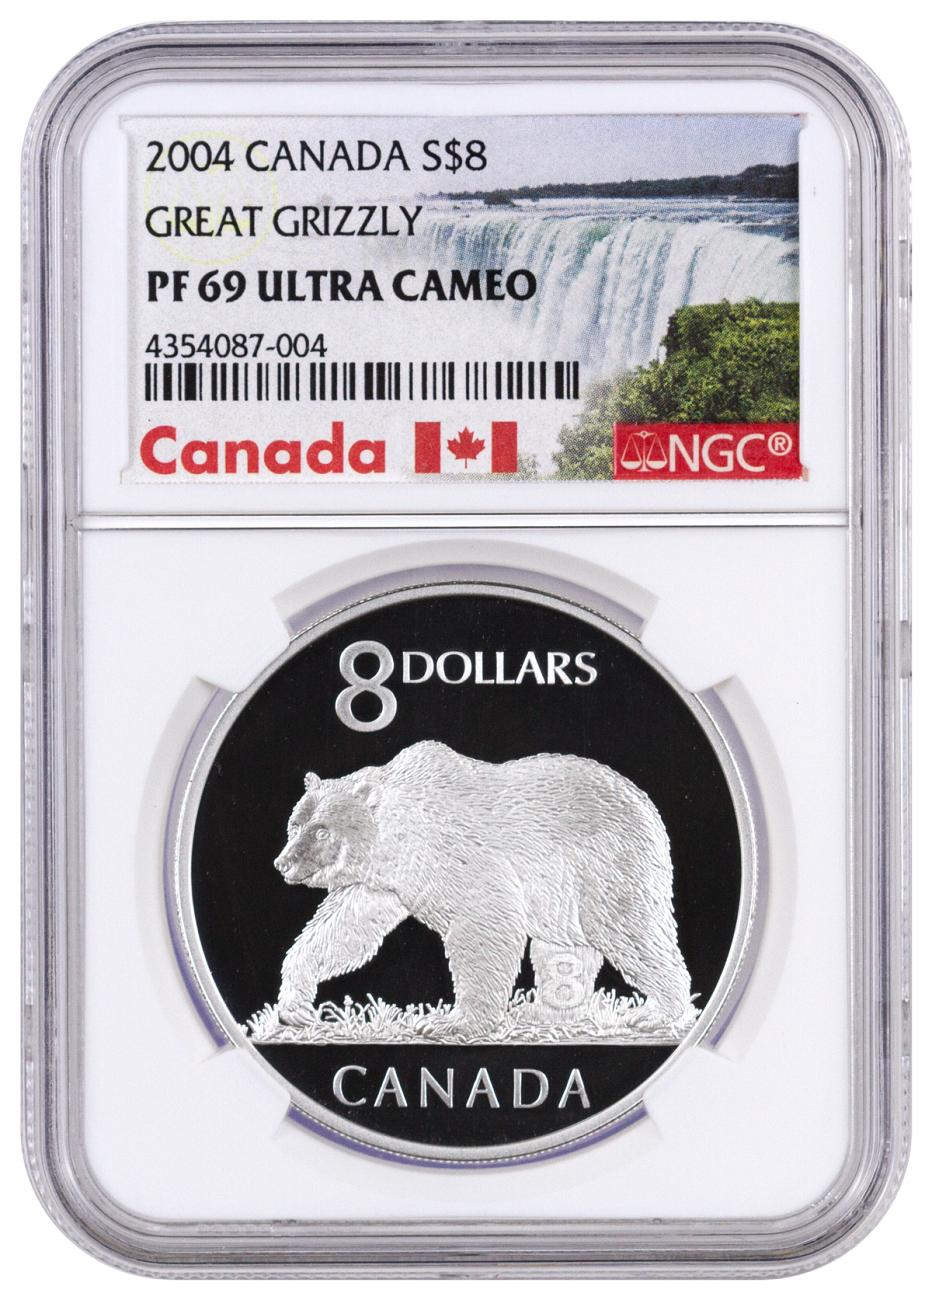 2004 Canada $8 Proof Silver Great Grizzly - NGC PF69 UC